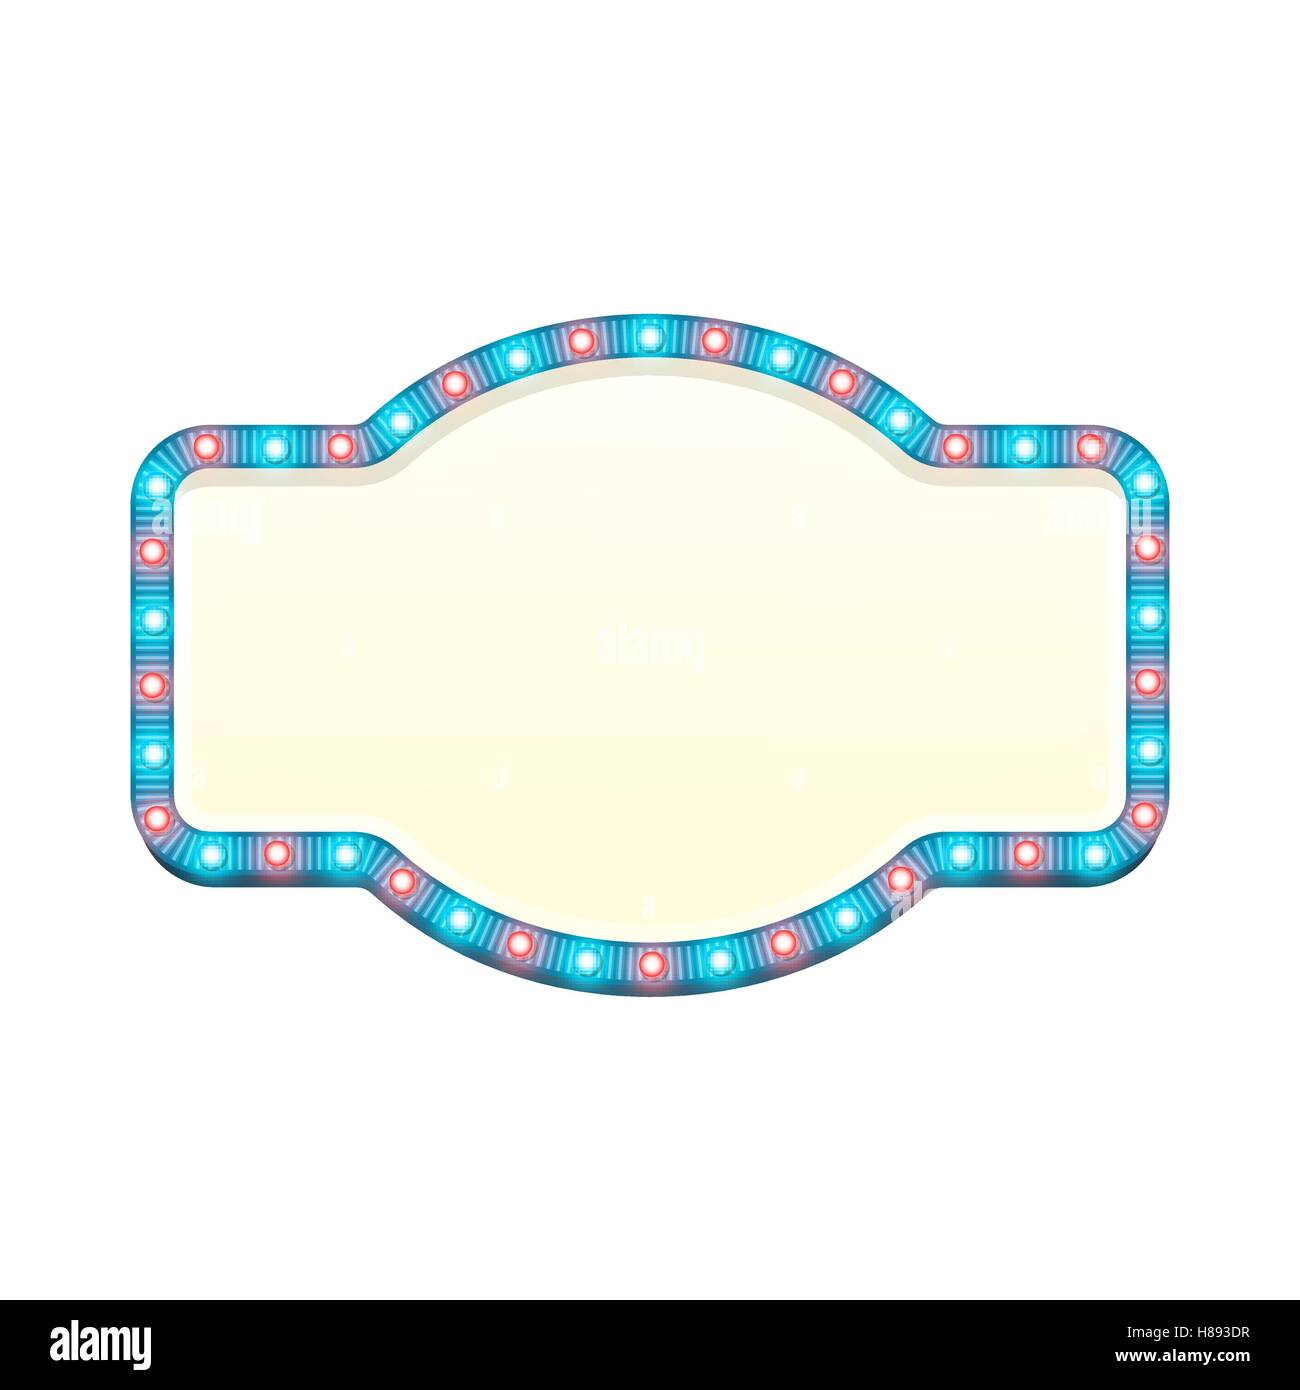 Blank 3d retro light banner with shining bulbs. Blue sign with blue and red lights and blank space for text. Vintage - Stock Image